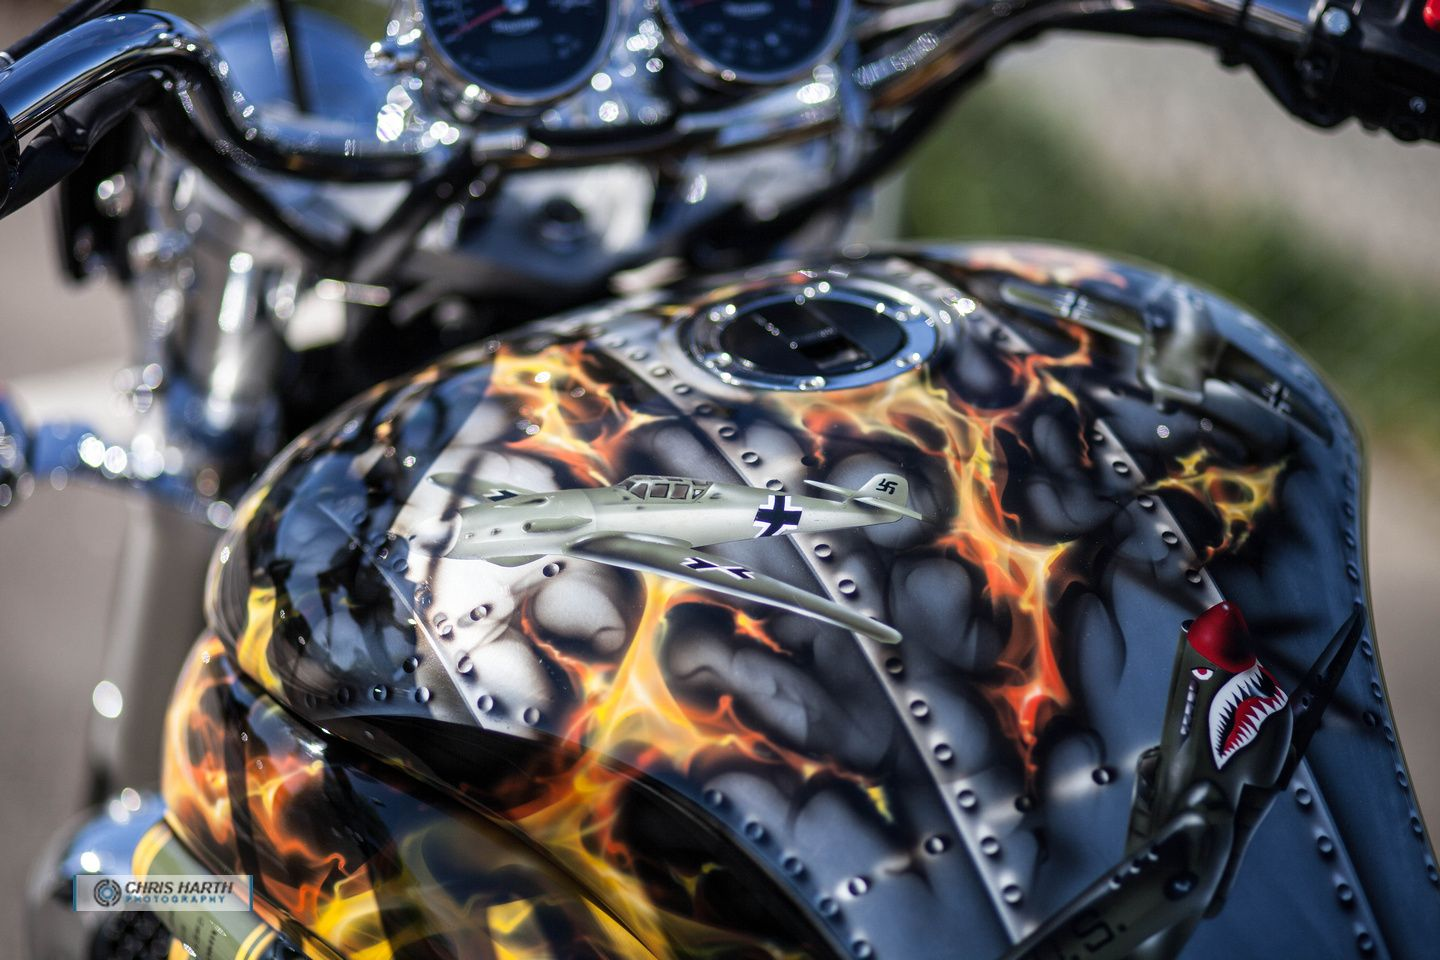 Bomber Themed Bike With Chrome Paint Airbrushed Rivets Planes And Flames